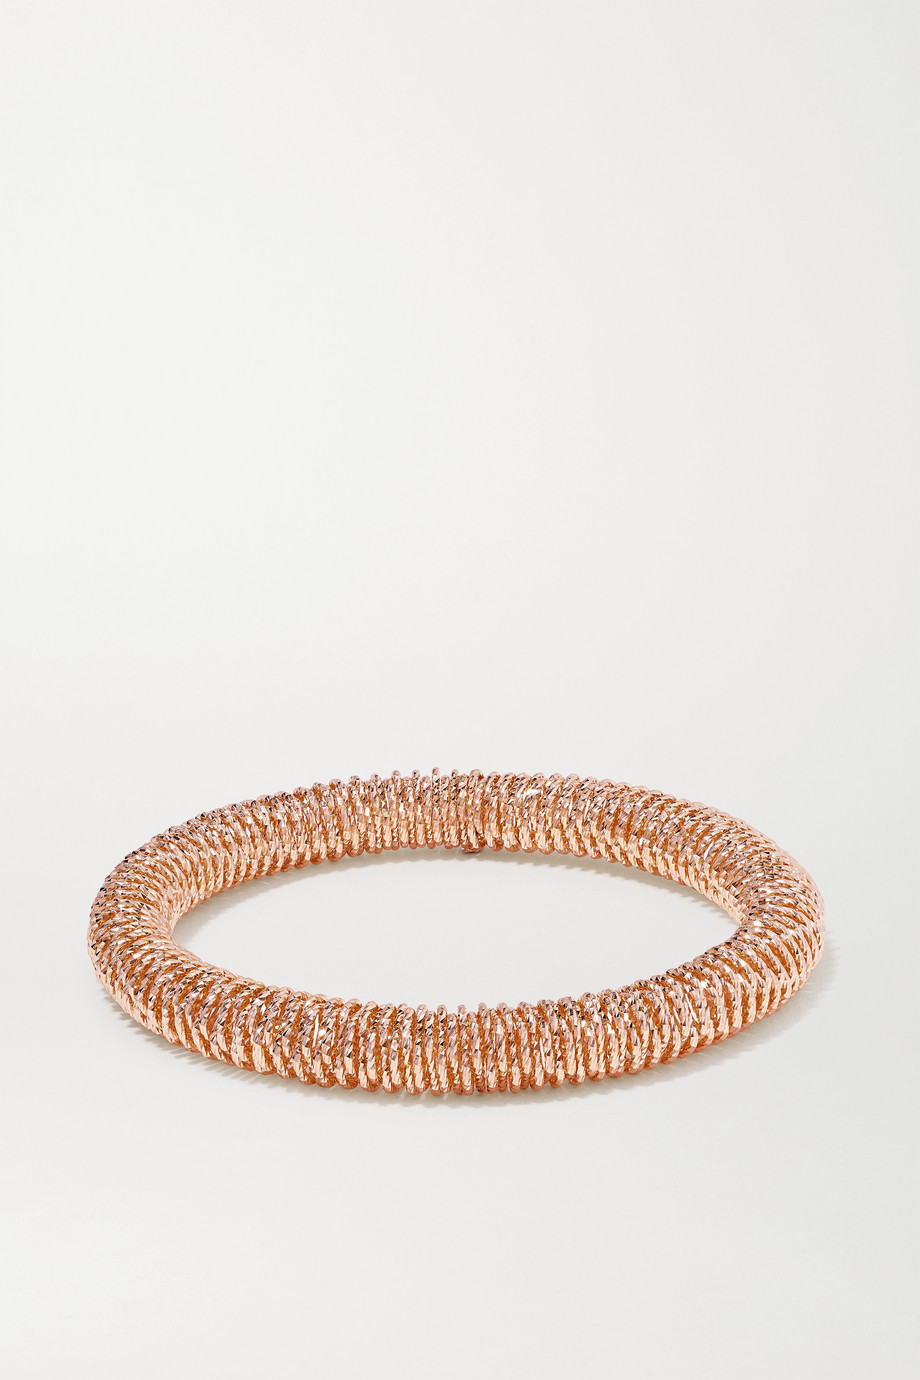 Carolina Bucci K.I.S.S. Small 18-karat rose gold bracelet